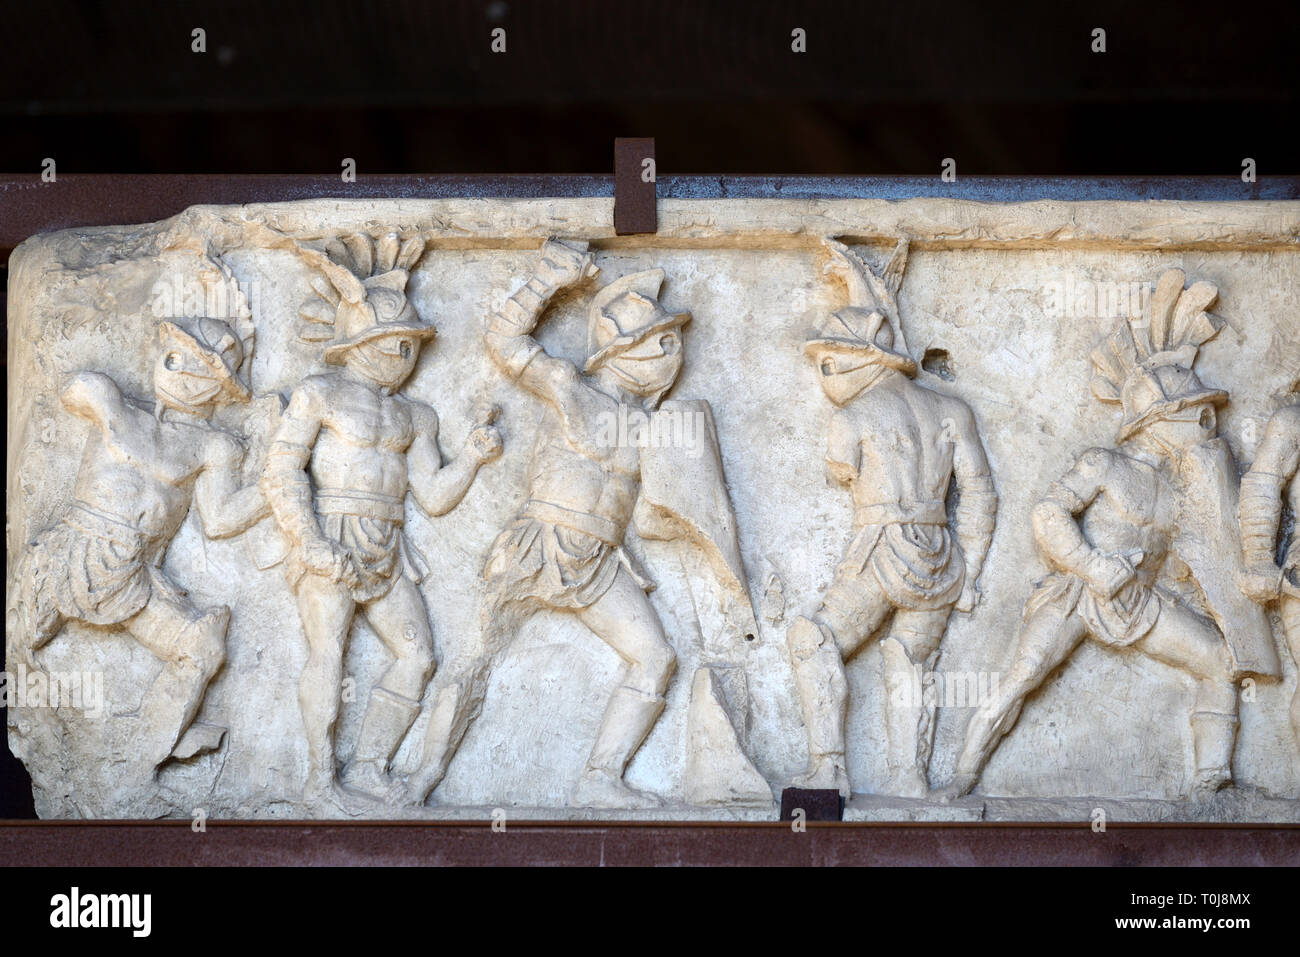 Carved Marble Frieze of Roman Gladiators from the Necropolis in Pompeii (on Display in the Colosseum Rome) - Stock Image